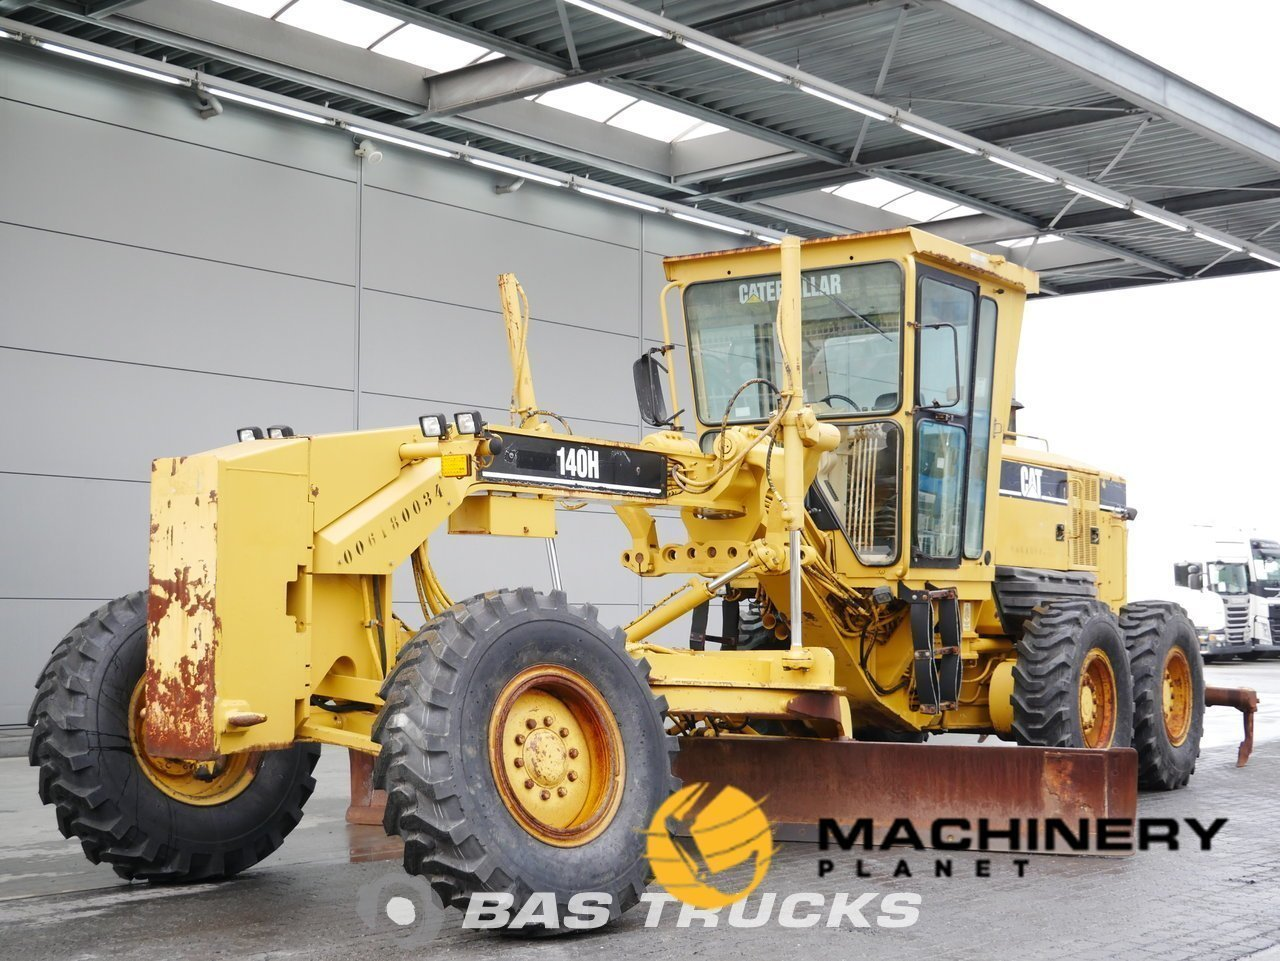 Used-Construction-equipment-Caterpillar-140H-6X4-2005_145027_1-1553947209808_5c9f5a49c53bd-1.jpg